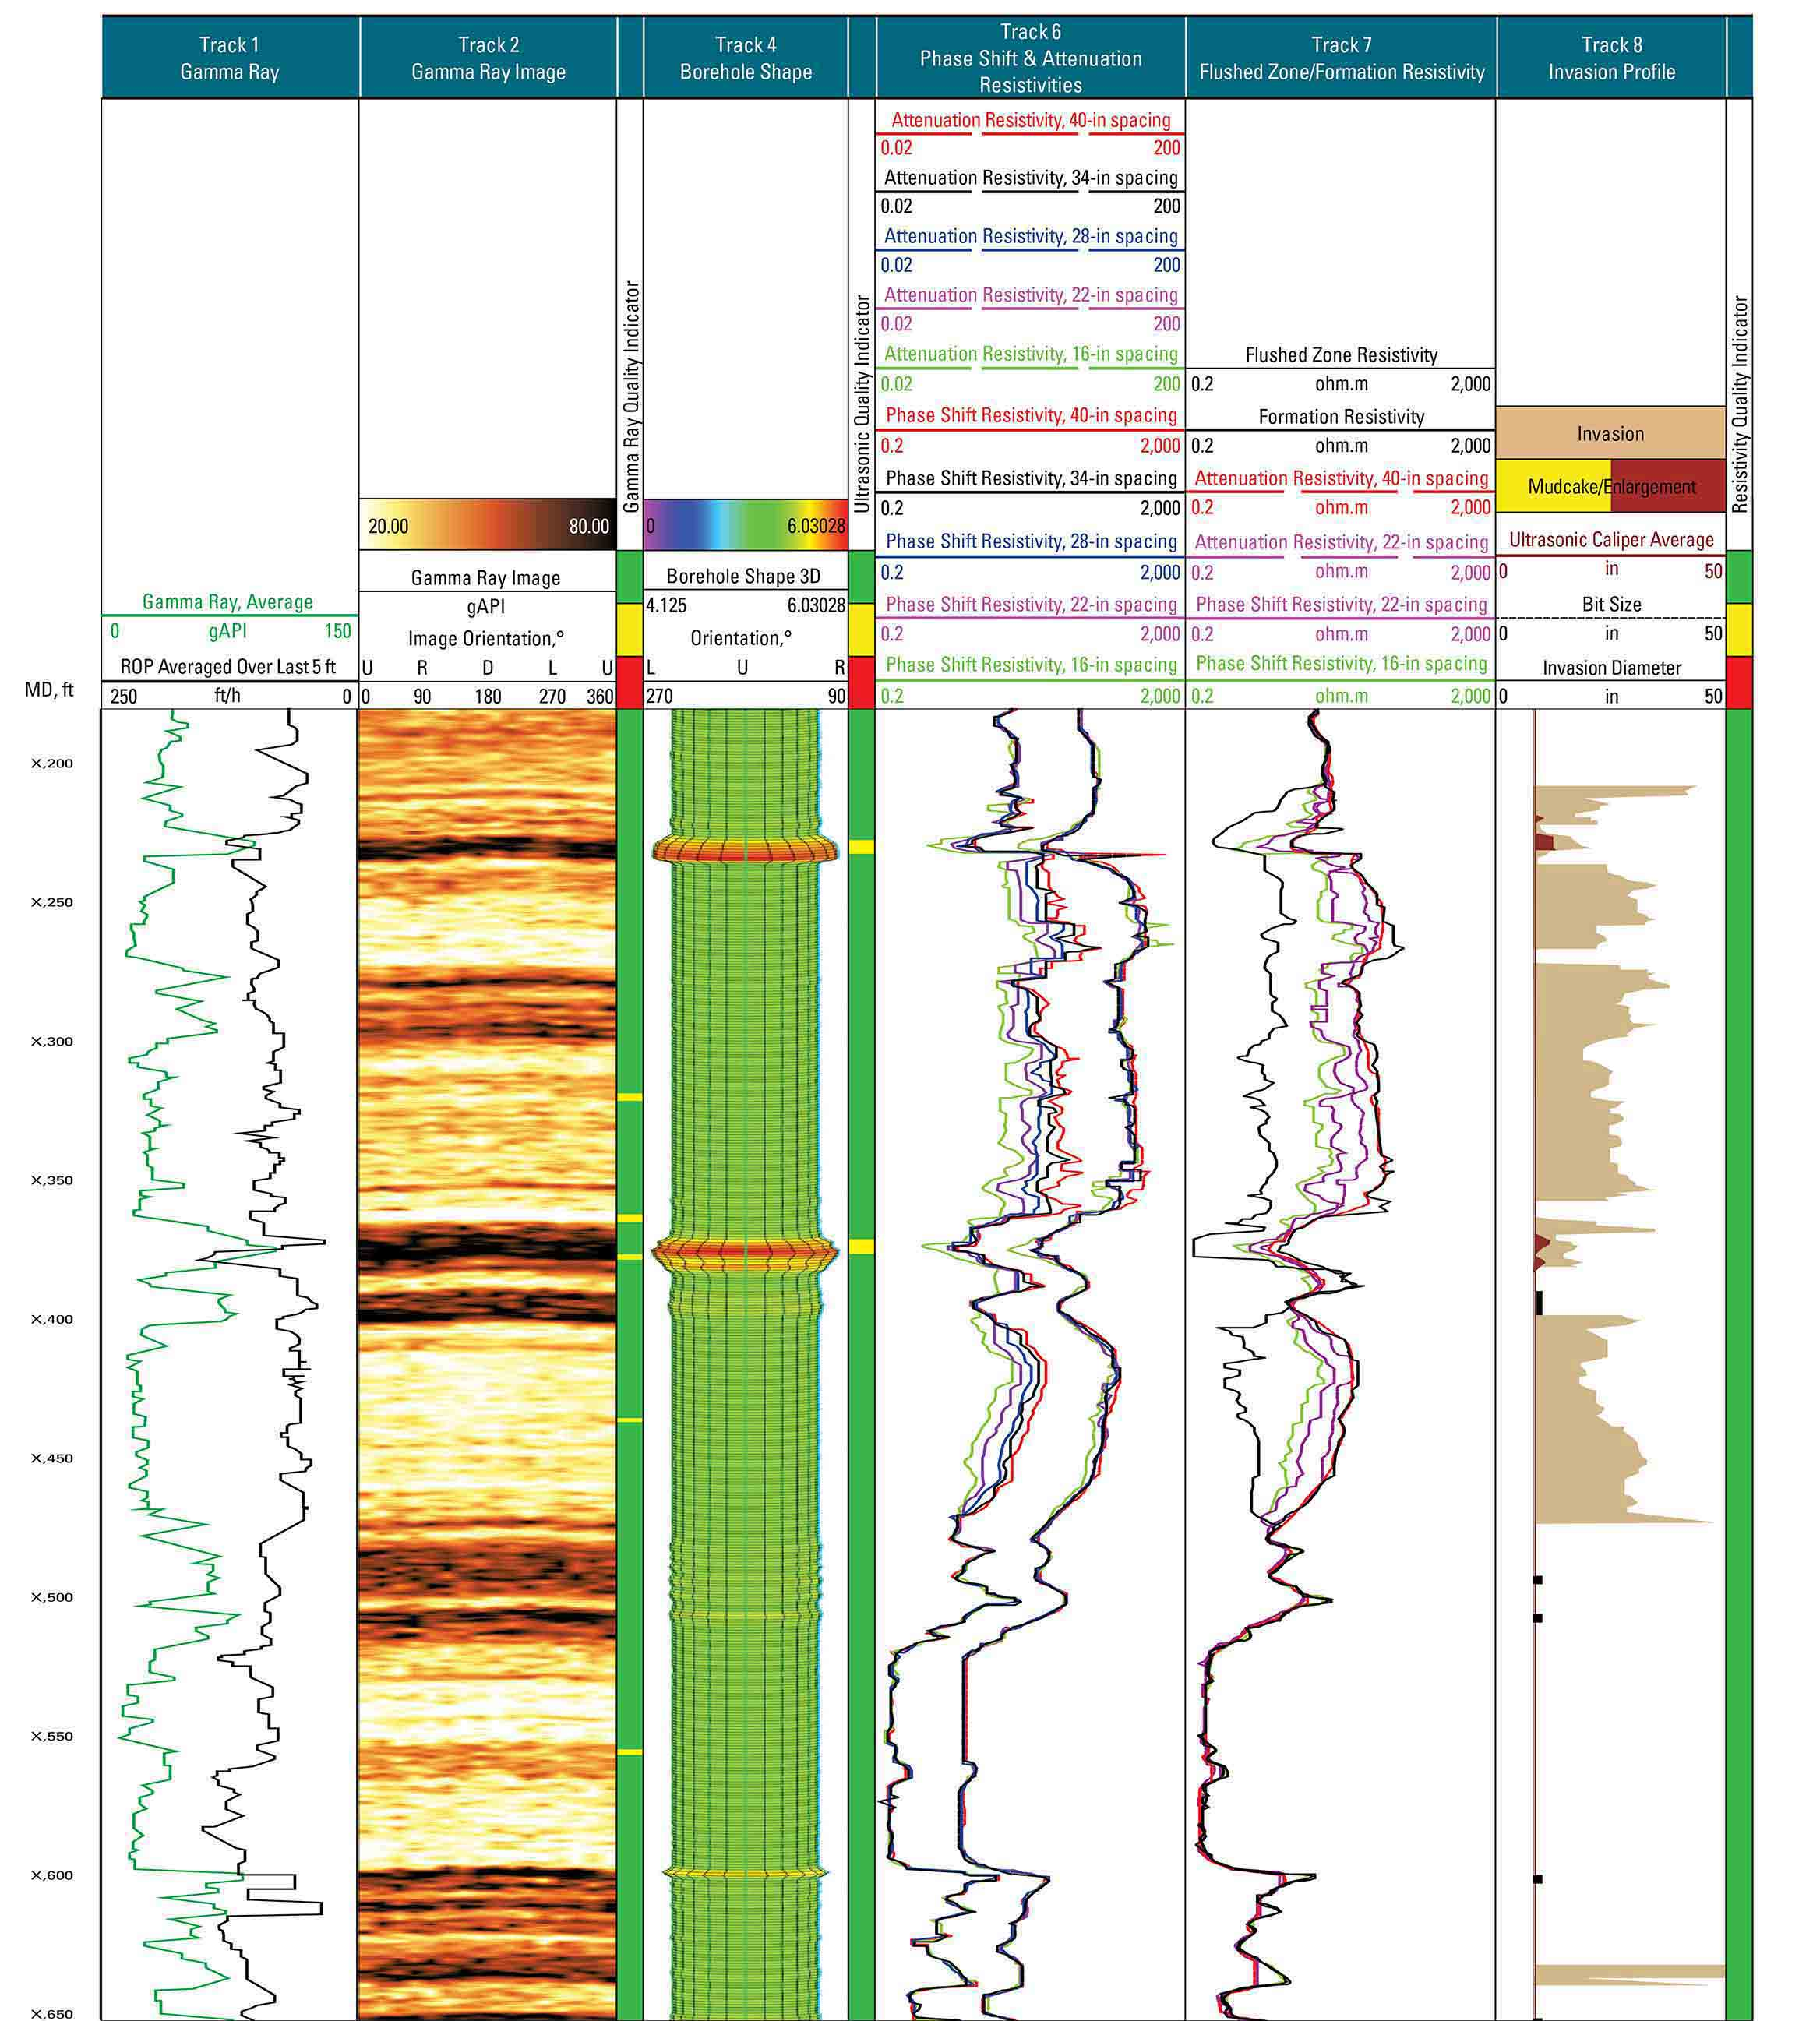 A log from the NeoScope service showing various gamma ray, borehole shape, resistivity, and invasion profile tracks